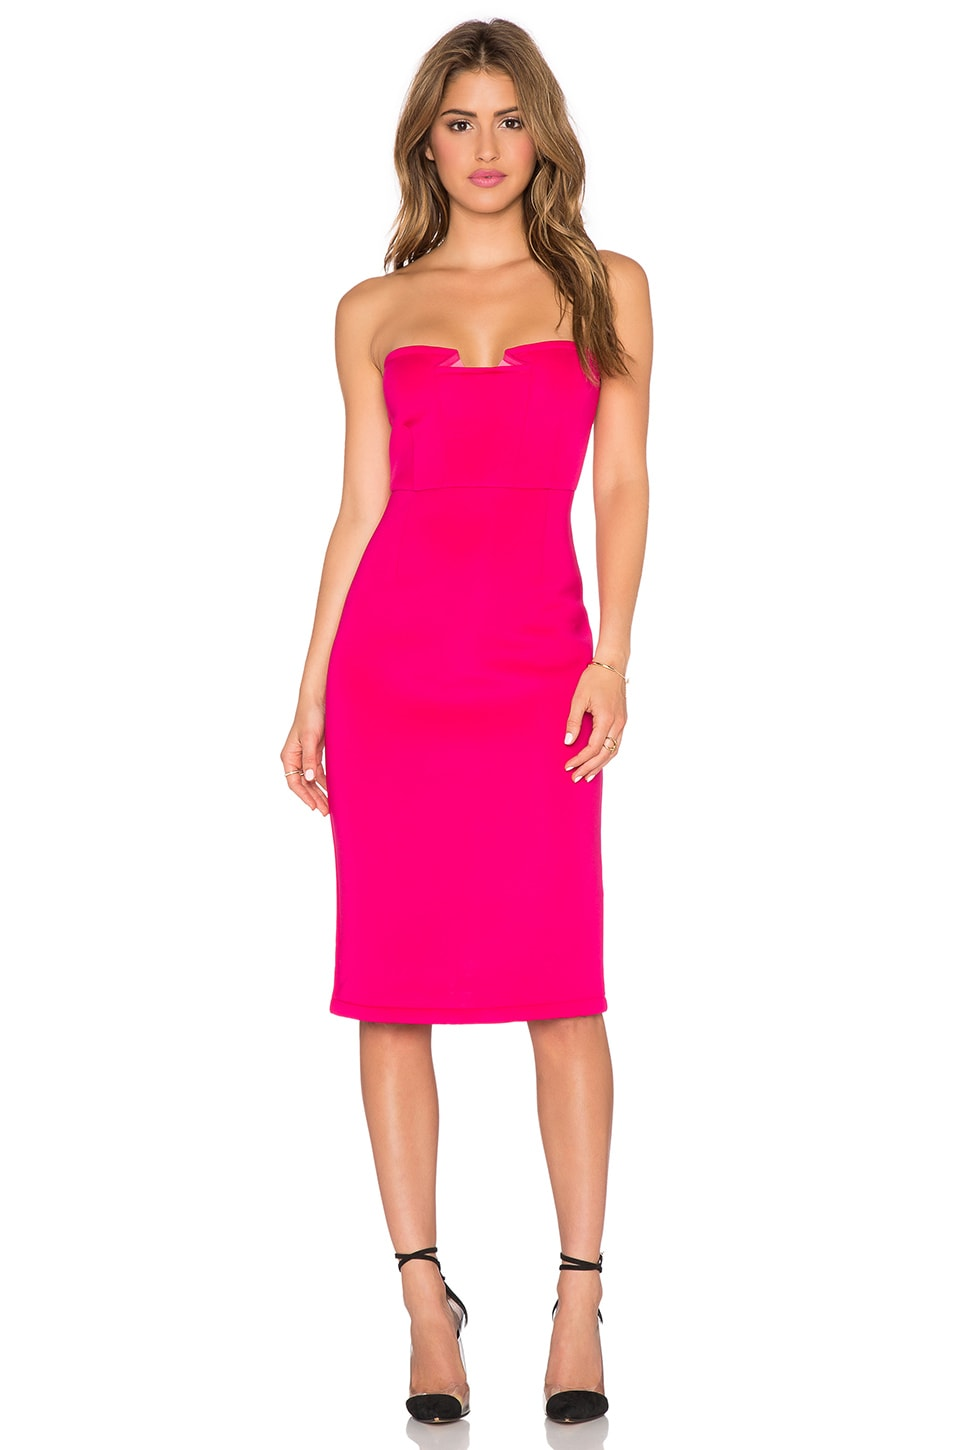 Hot Pink Strapless Dresses Cocktail Dresses 2016